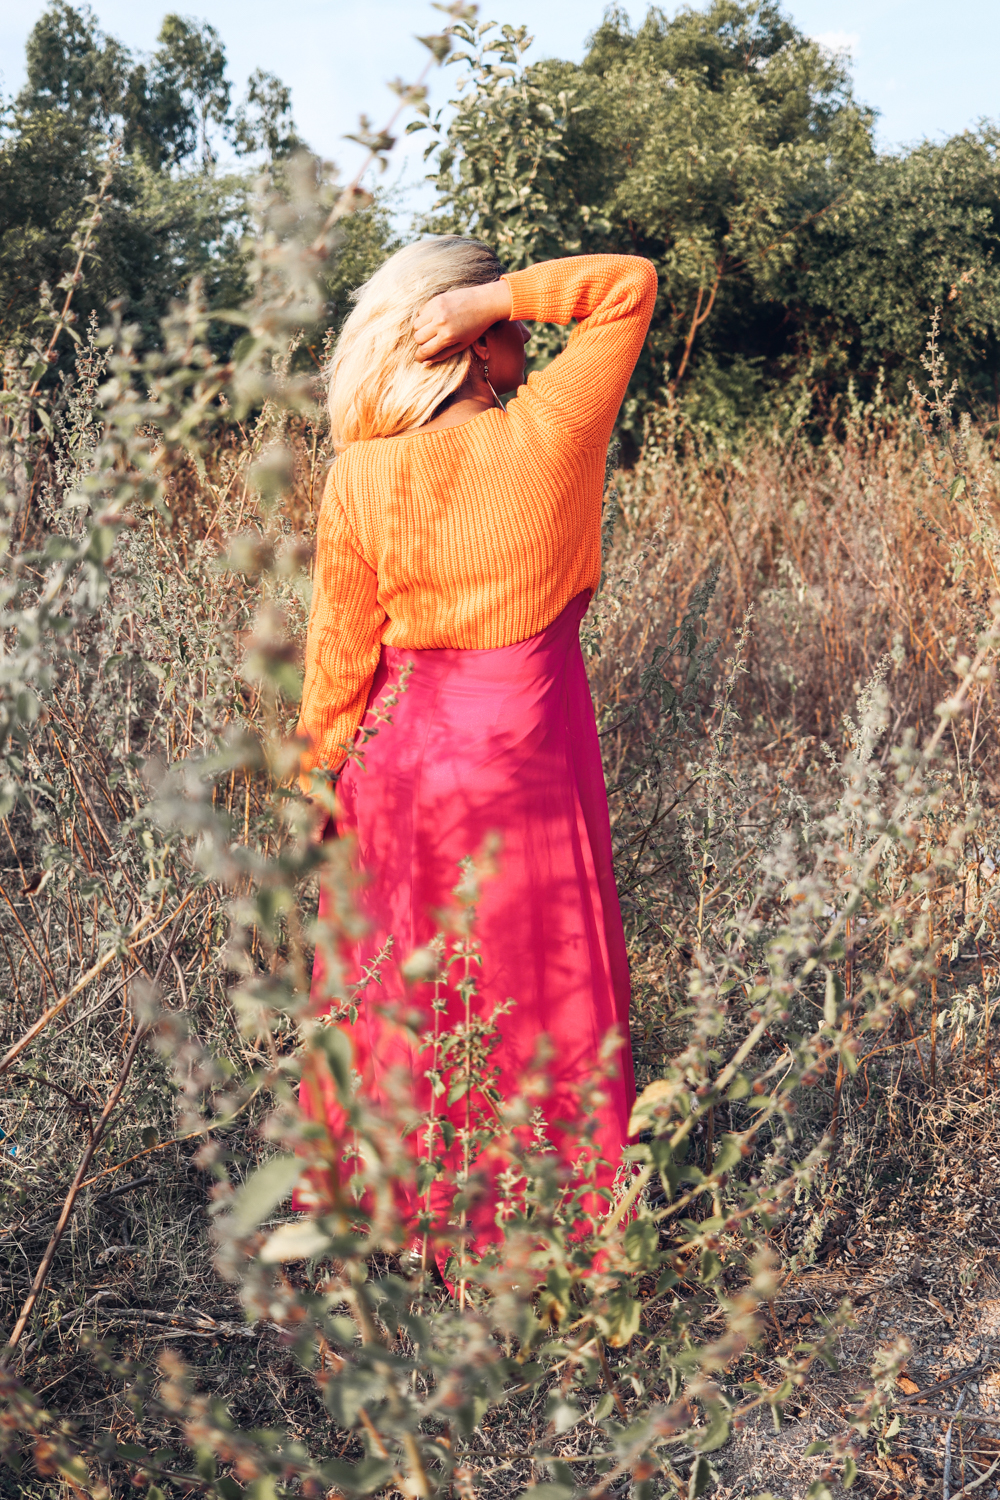 Orange Sweater ; Coral ; Hot Pink ; Maxi ; Winter Wear; Fall Fashion ; Layering ; Blonde ; Conceptual ; Winter Outfit ; Runway Fashion ; Color Pop ; fashion photography ; ootd ; fall look ; winter Fashion ; zaful ; fall 18 ; Hyderabad ; Editorial ; Naznin ; Naznin Suhaer ; dusky; model ; indian blogger ; hyderabad fashion bloggers ; hyderabad bloggers ; hyderabad fashion blogger ; I Dress for the Applause ;